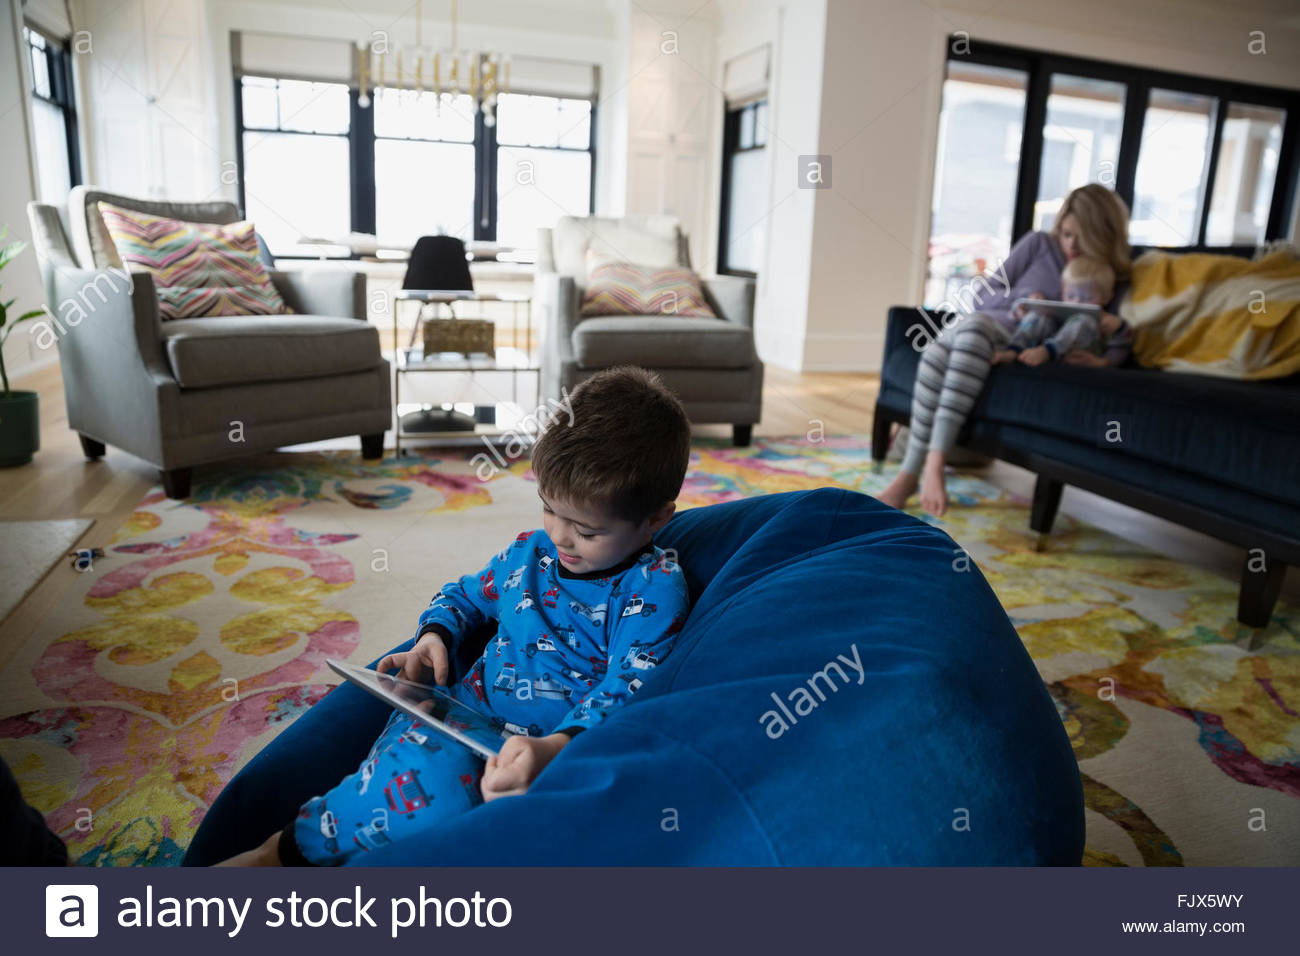 Boy pajamas using digital tablet bean bag chair - Stock Image